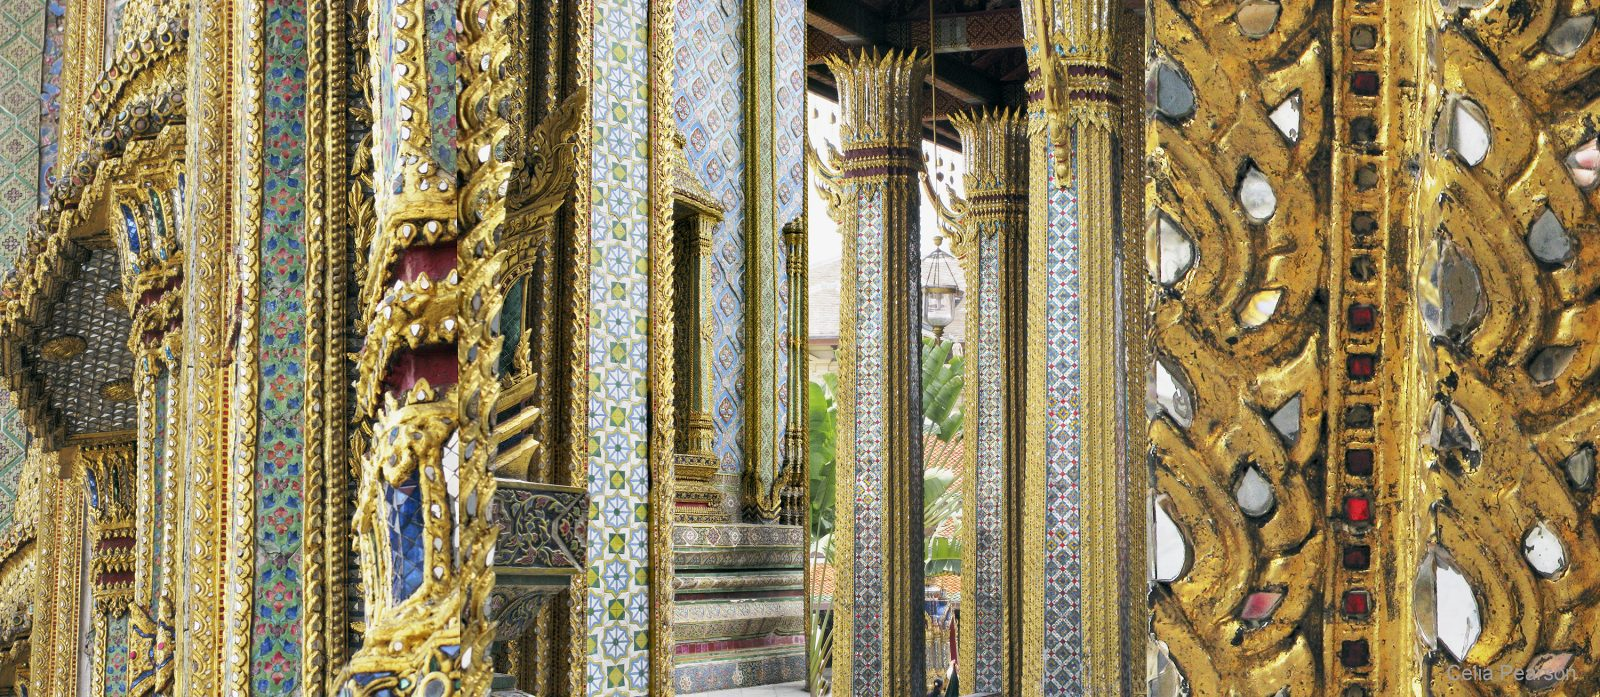 Celia Pearson. Palace (Thailand). 2010. archival inkjet print on cotton rag paper. 15.5 x 35.5